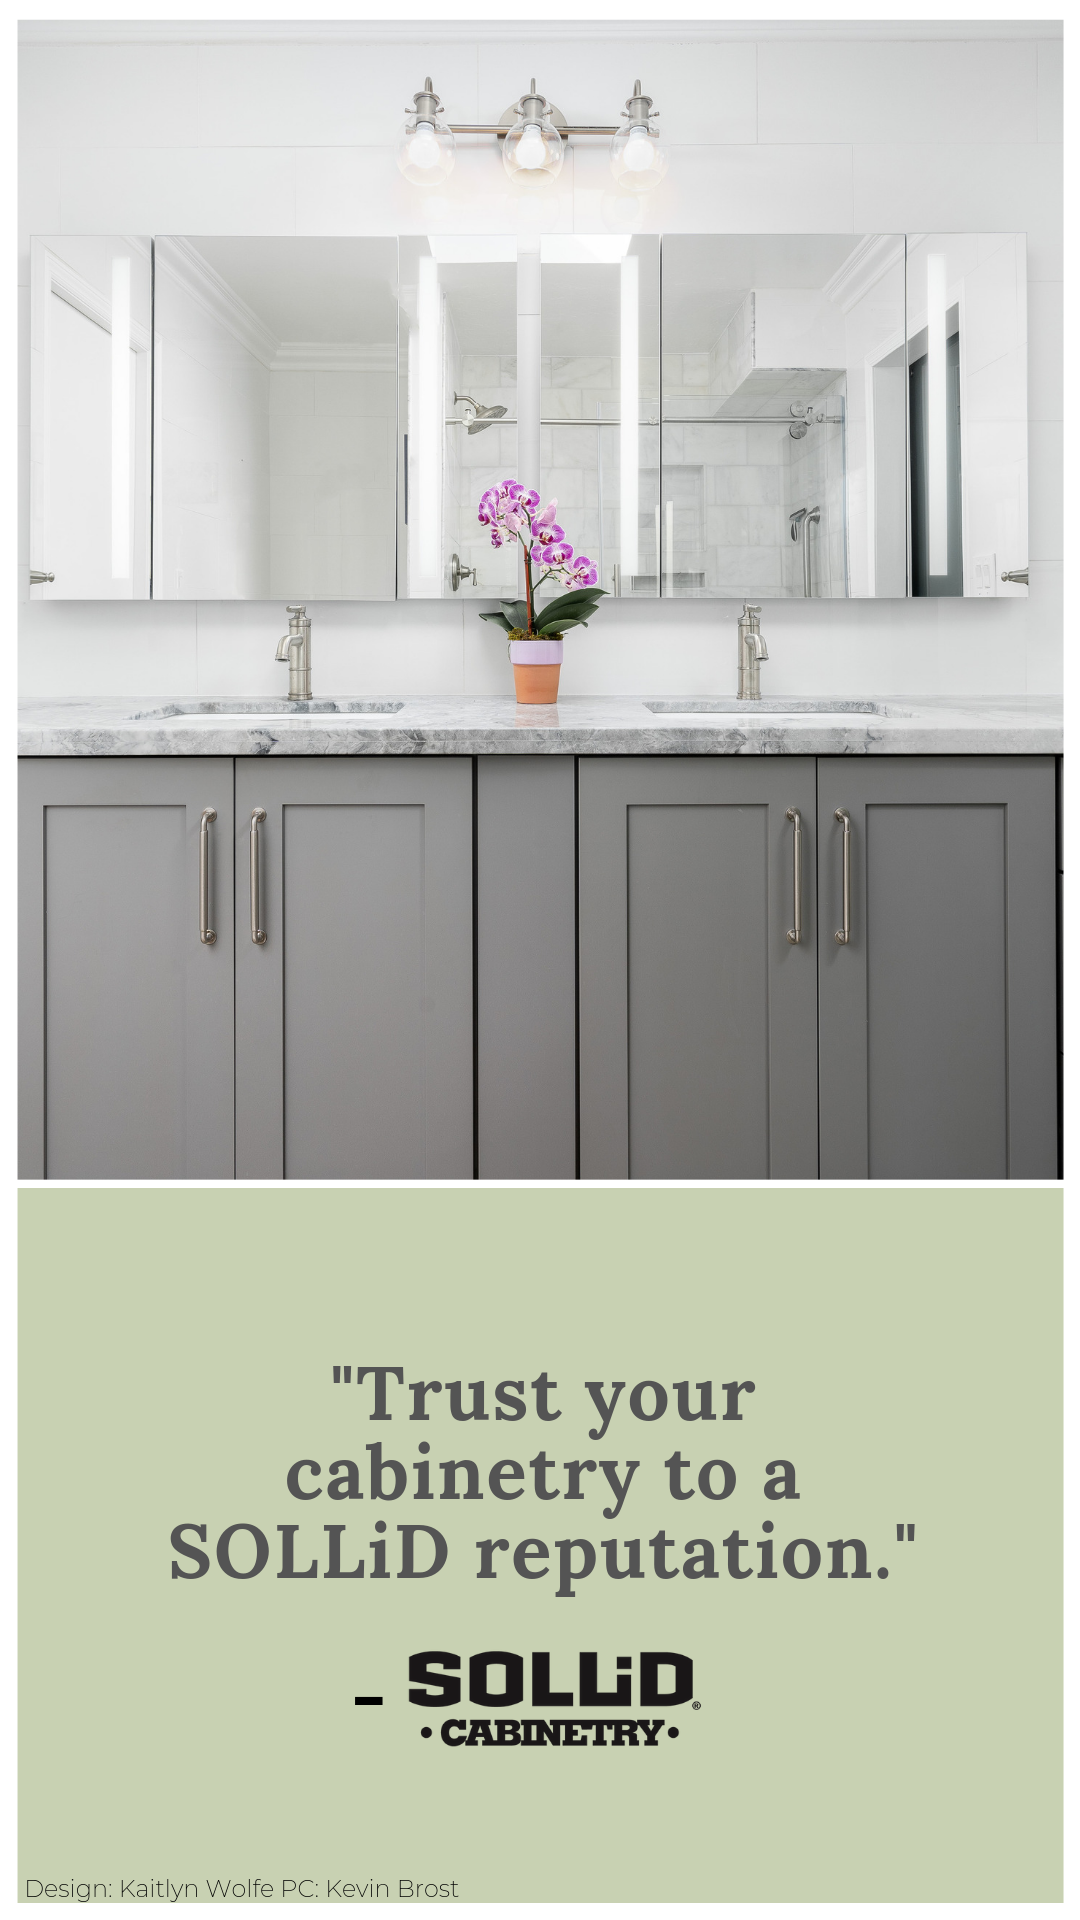 Sollid Cabinetry Offers Semi Customized Kitchen Cabinets Bathroom